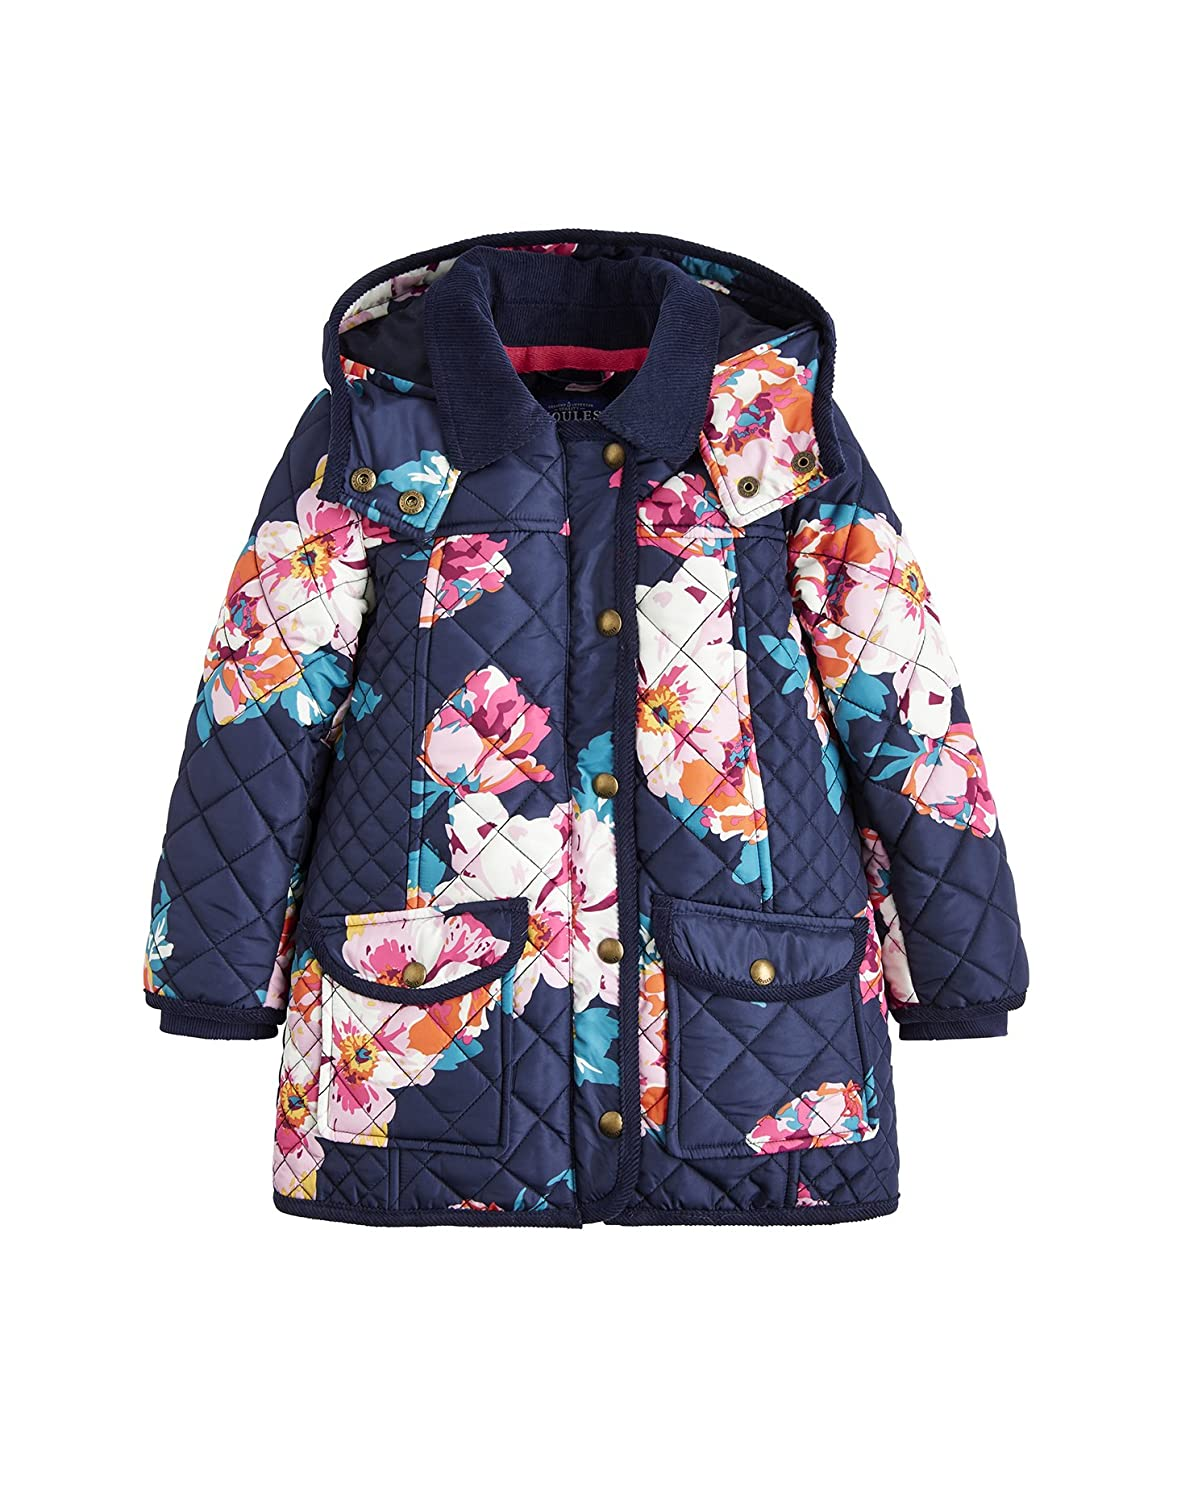 Joules Hooded Quilted Jacket - Navy Granny Floral